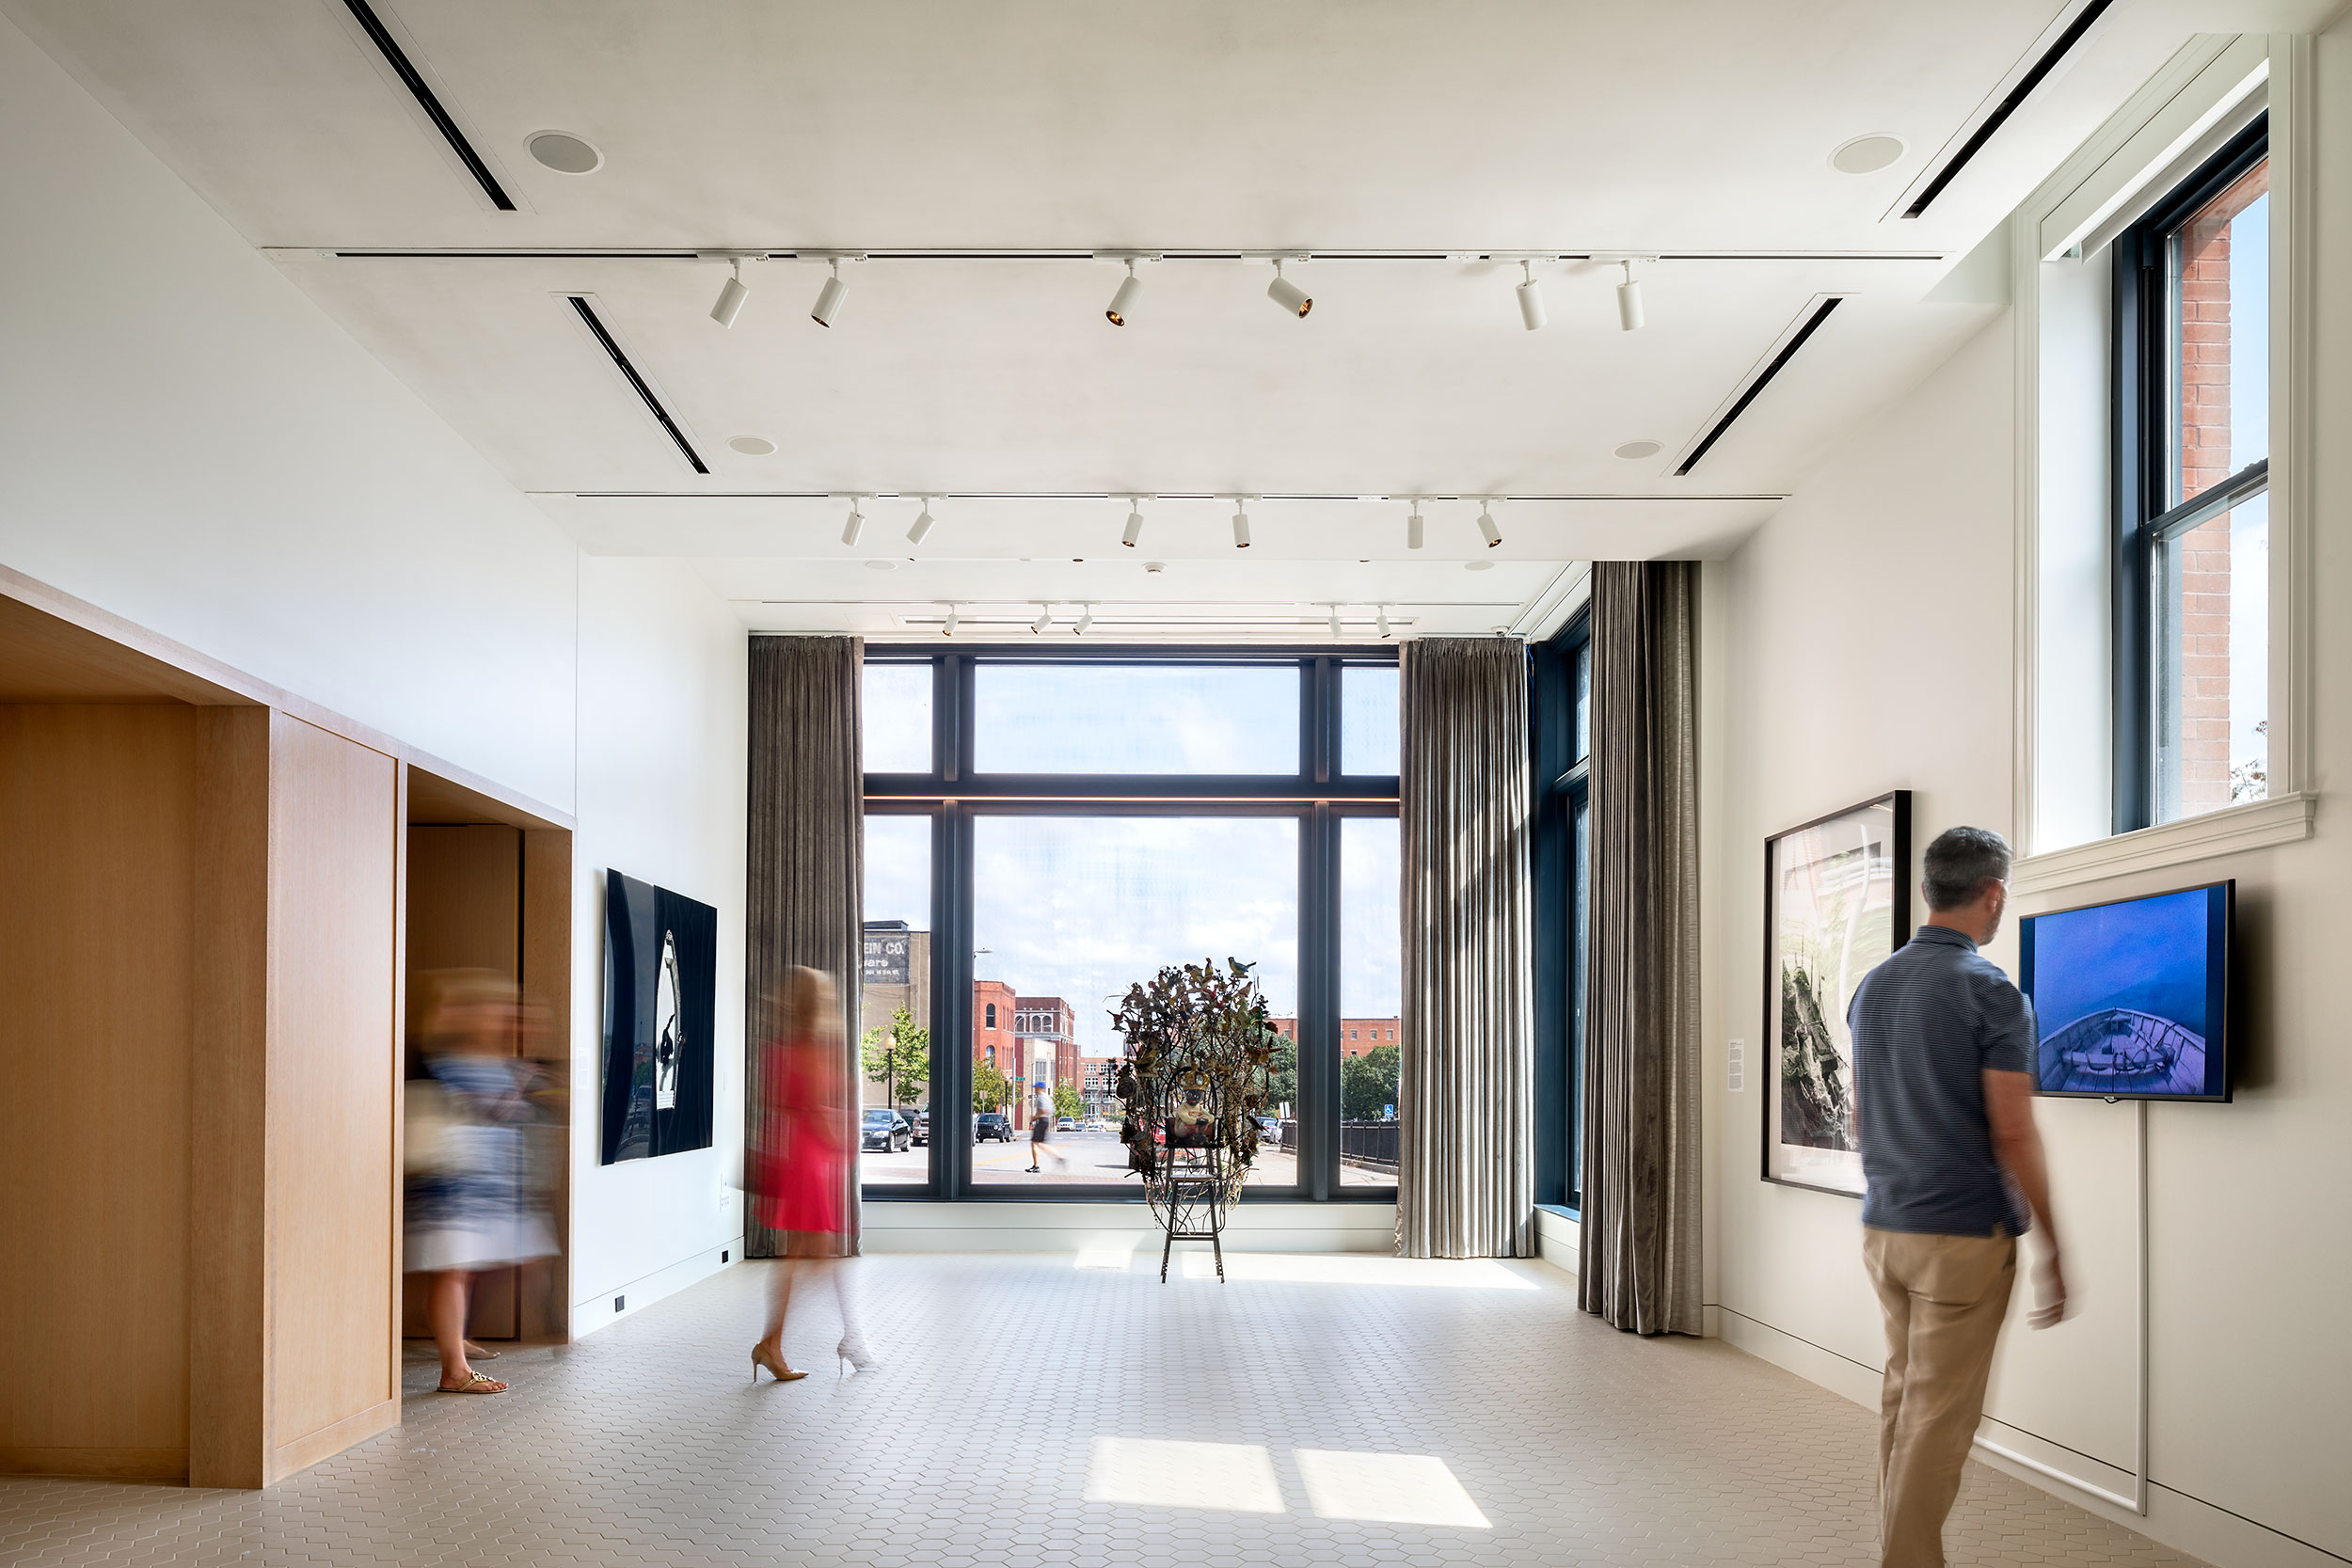 21c Museum Hotel, Art Gallery, Interior Architecture